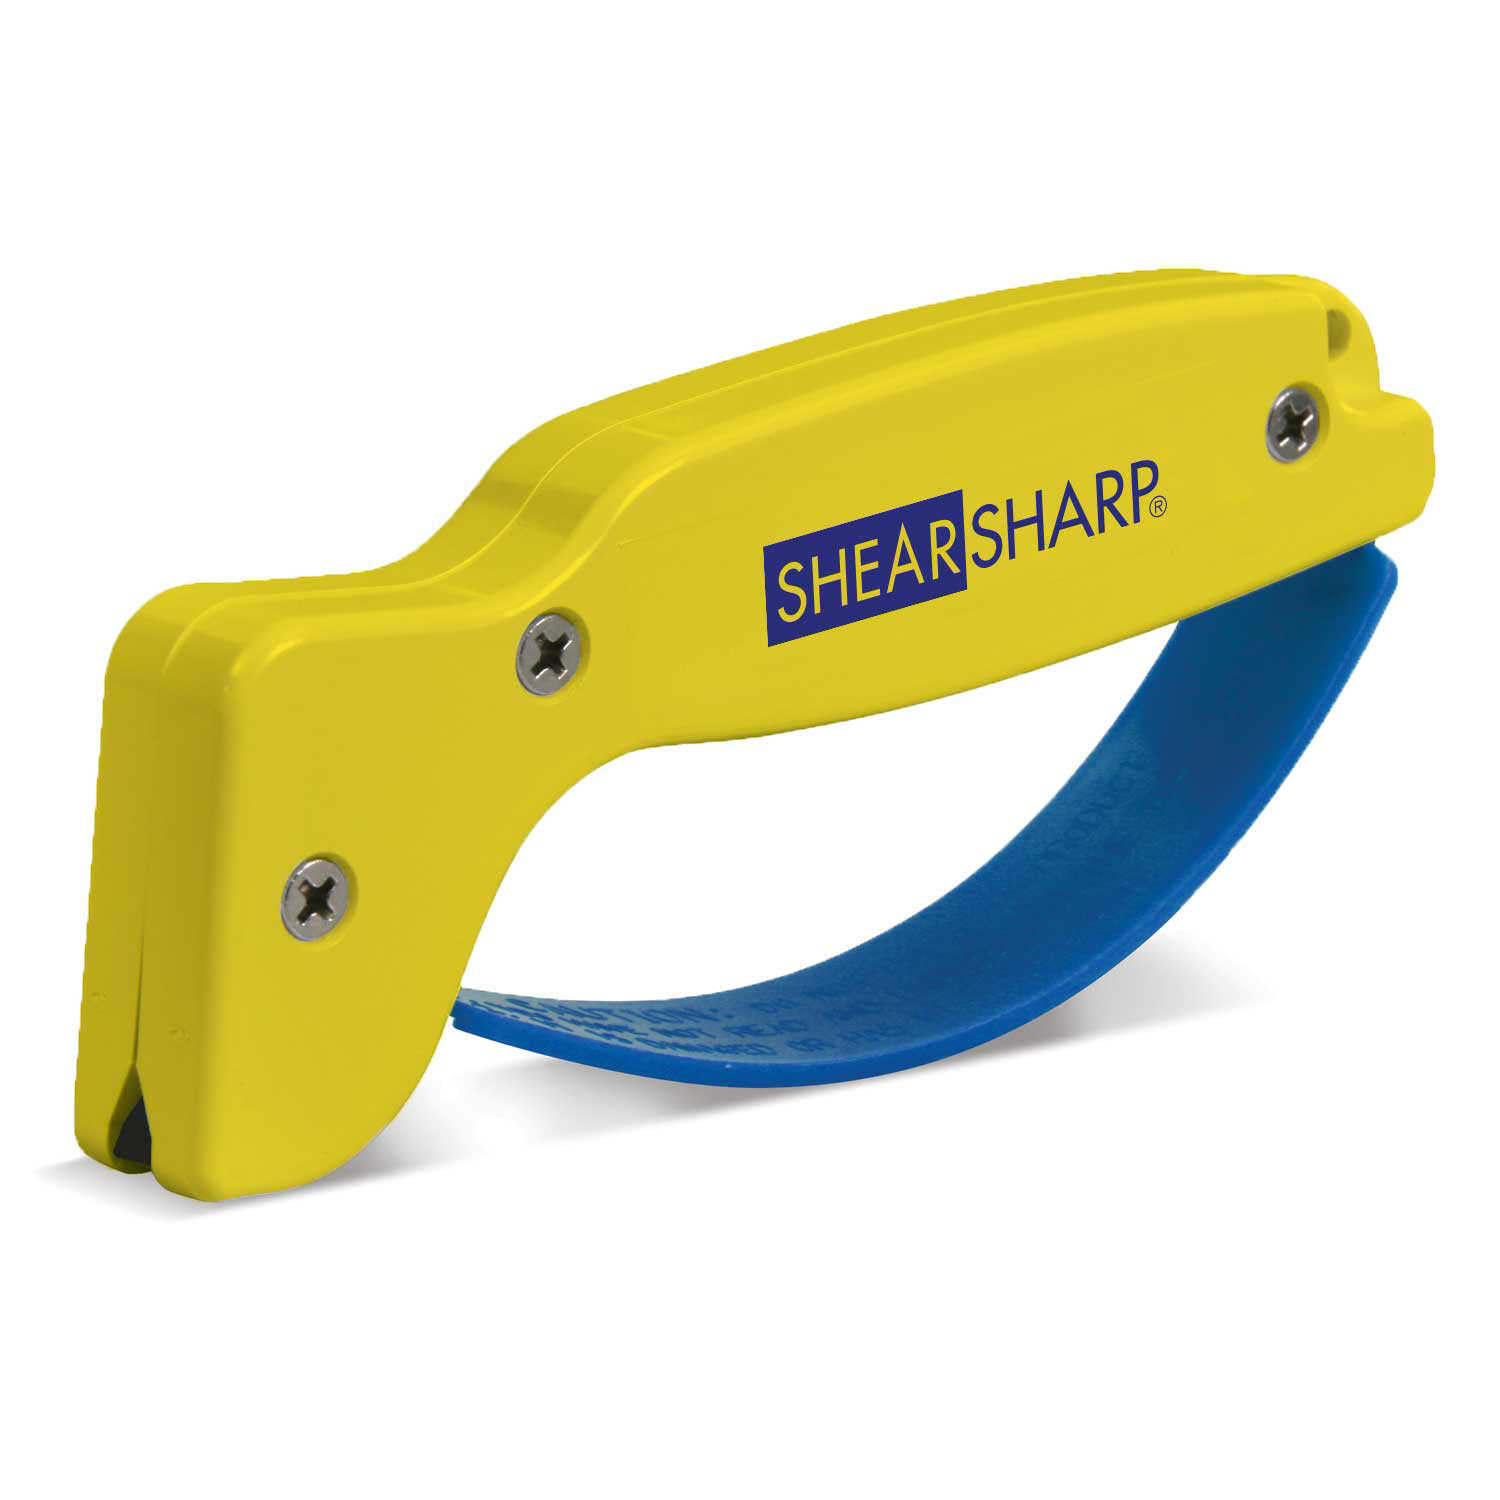 ShearSharp  AccuSharp  Gloss  Tungsten Carbide  1  Scissor Sharpener  Yellow